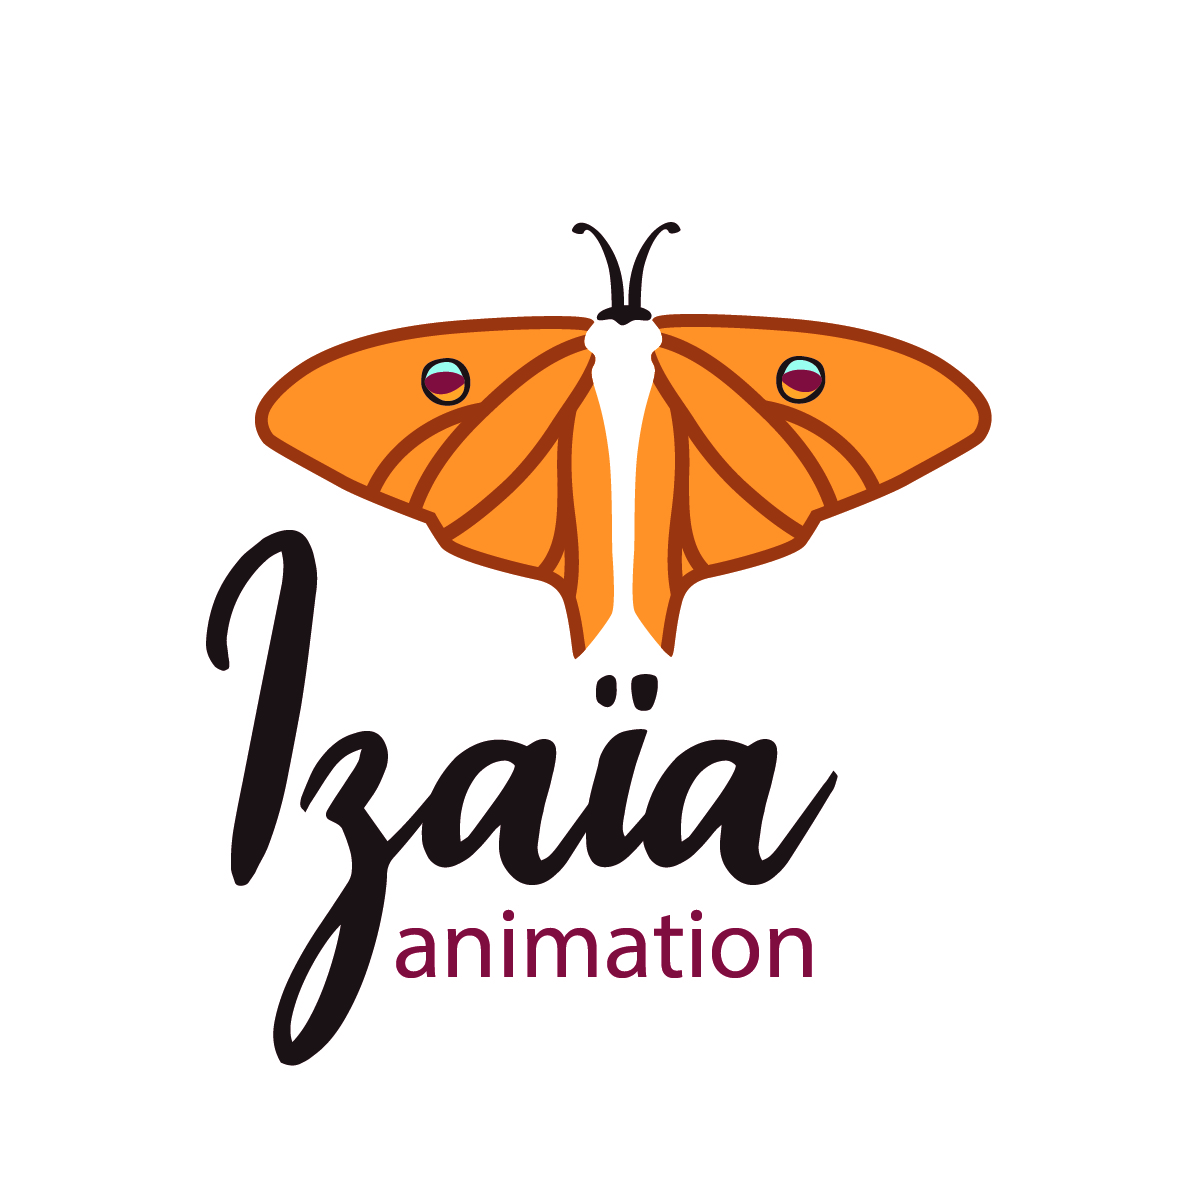 IZAÏA animations